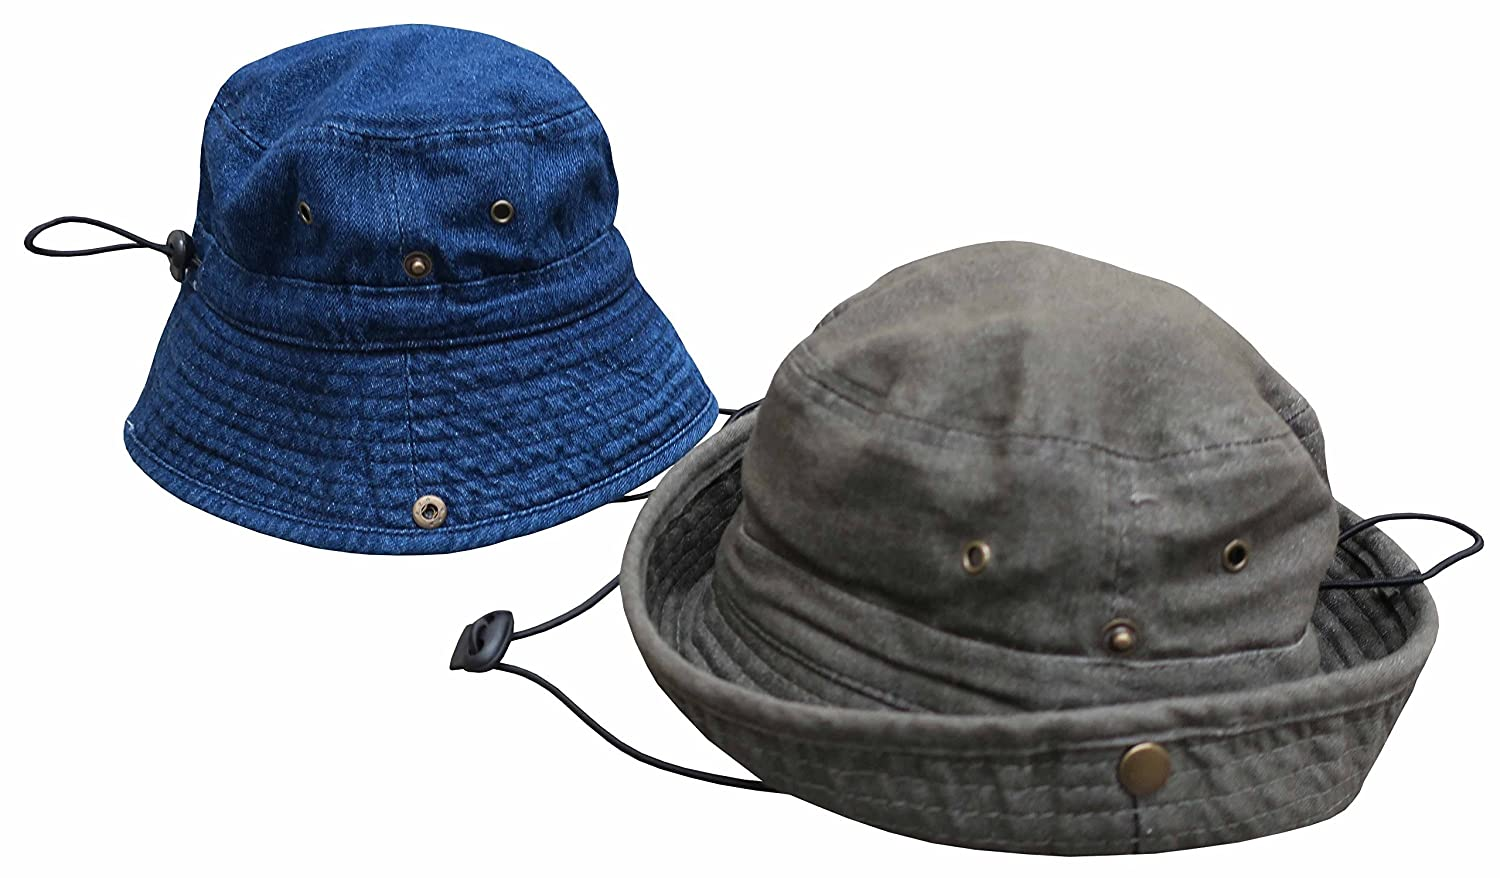 b4483144f37 Amazon.com  N Ice Caps Kids Distressed Washed Denim Cotton Adjustable Bucket  Hat 2PC Pack  Clothing